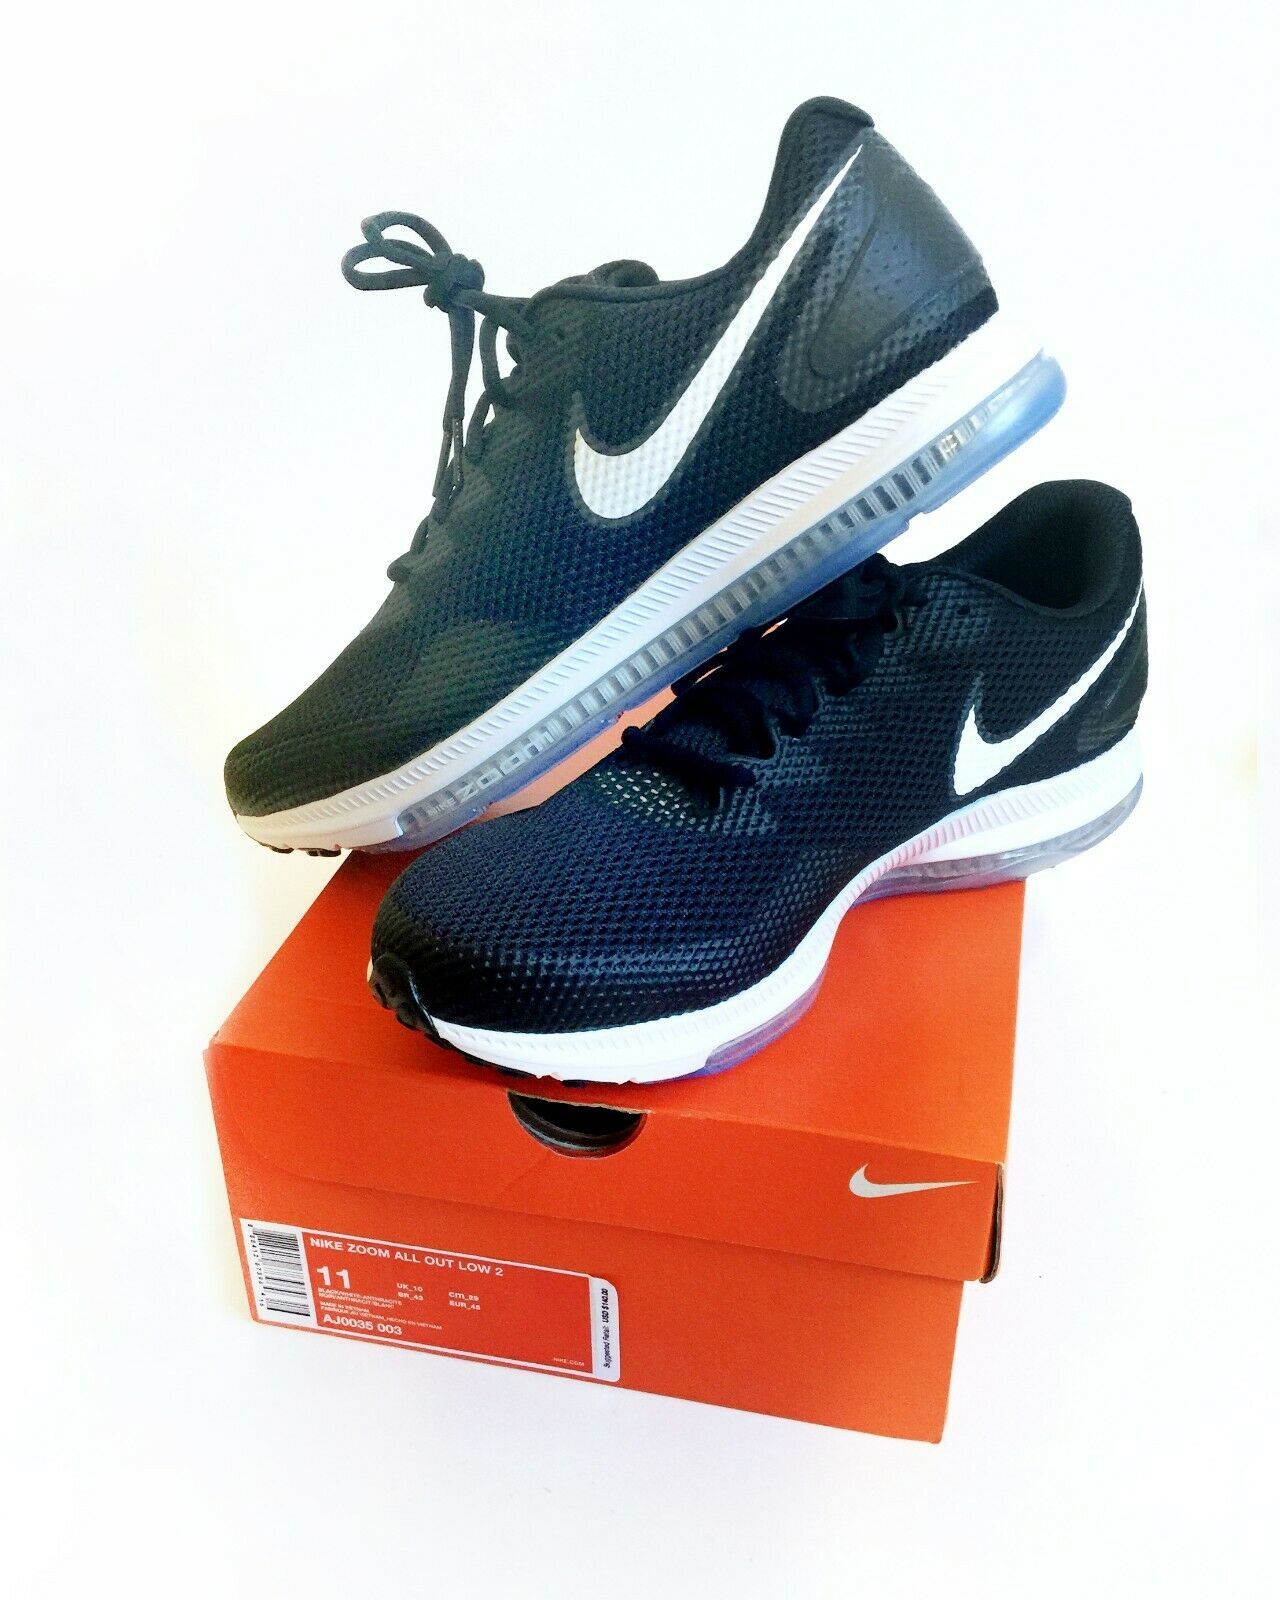 cheaper 77449 2f734 New Nike Zoom Zoom Zoom All Out B W Low 2 Mens All Terrain Workout   Running